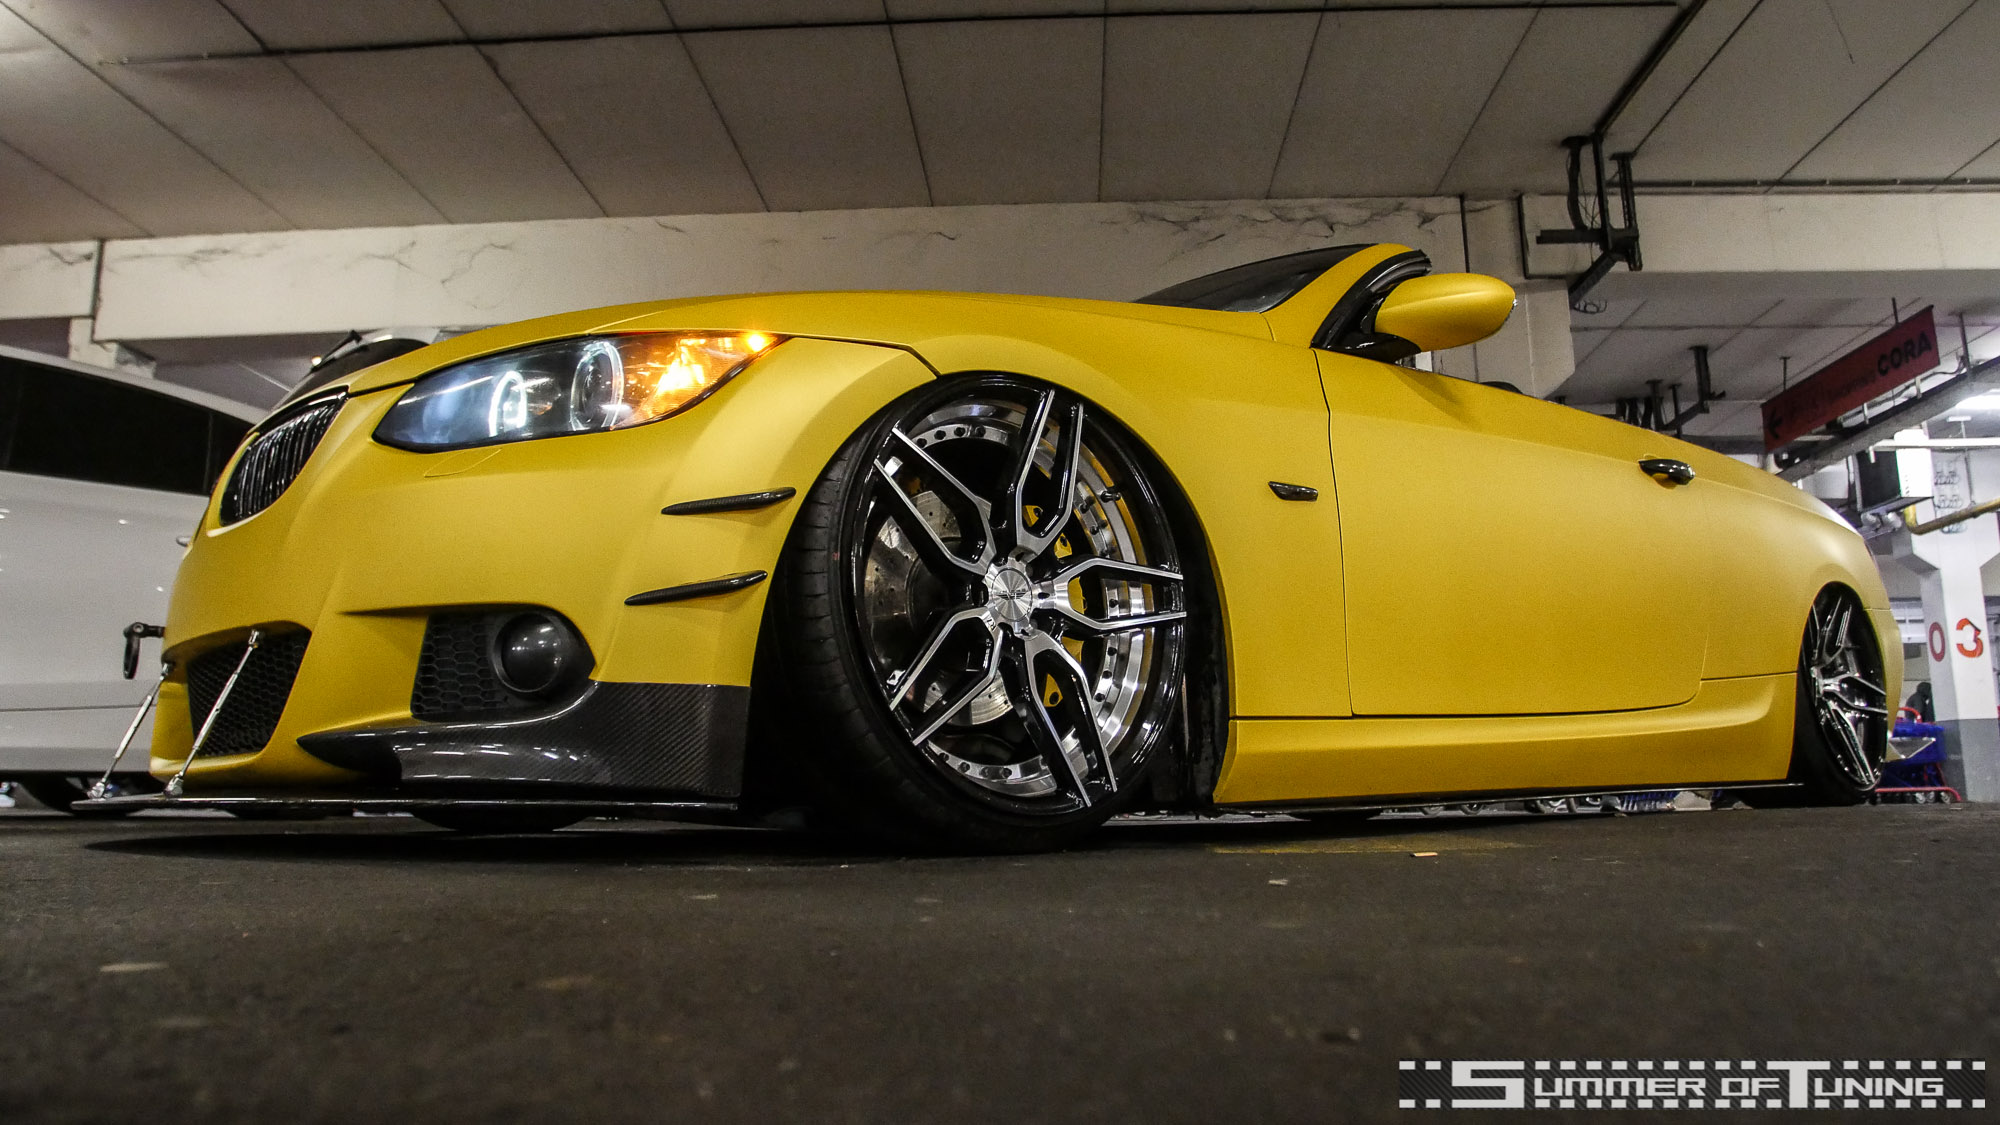 BMW Cabriolet, Bimmer, Airride, Bagged, Car Wrapping